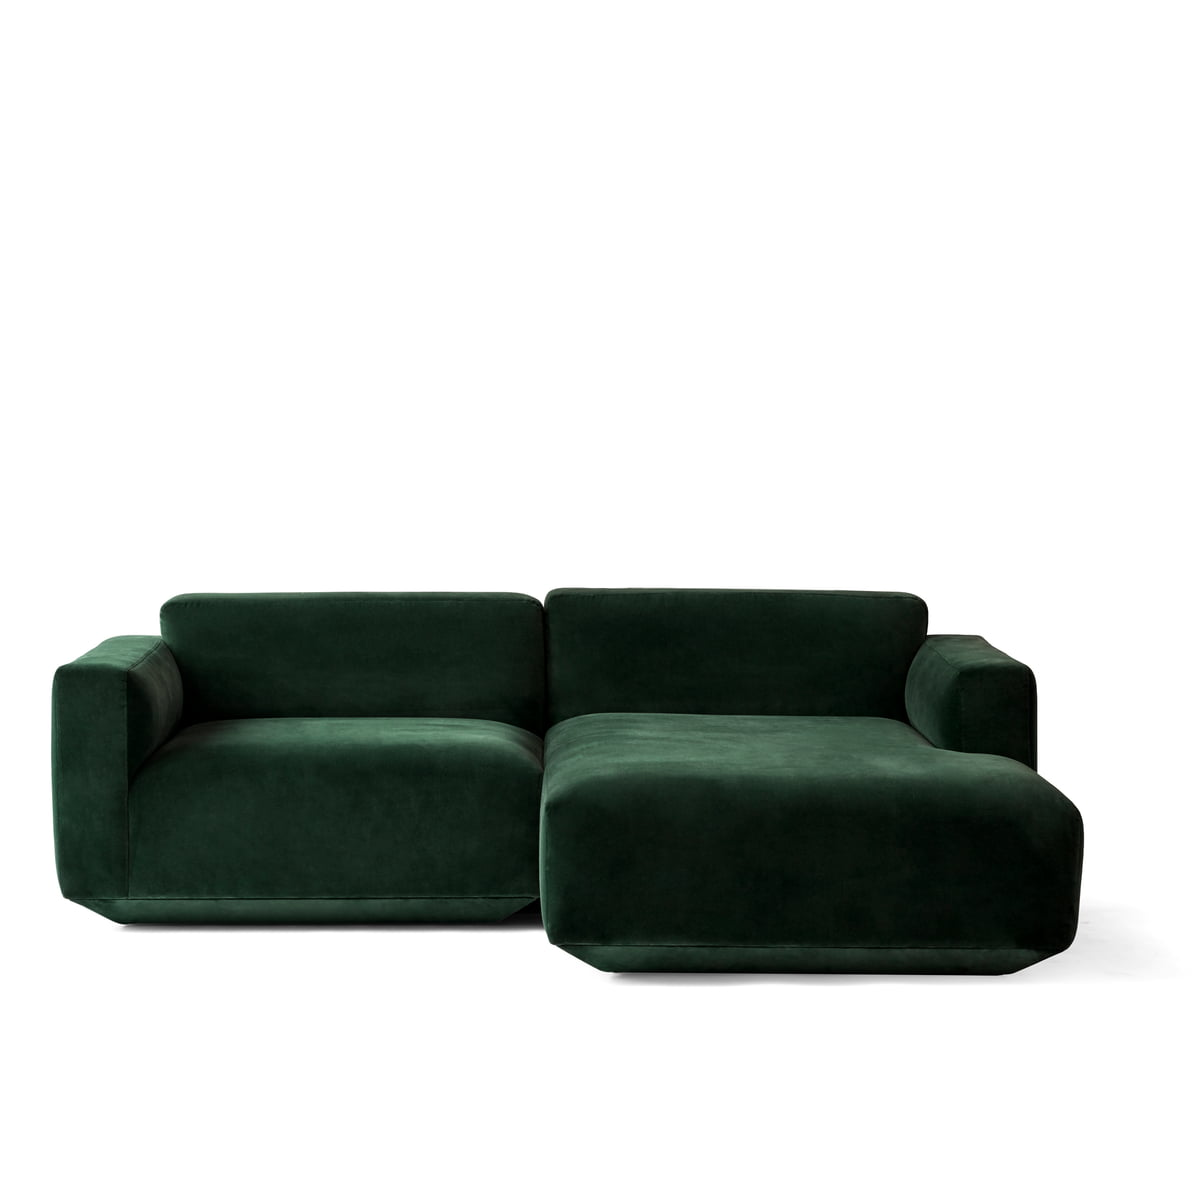 Develius Corner Sofa Configuration B By Tradition In Velvet 1 Forest